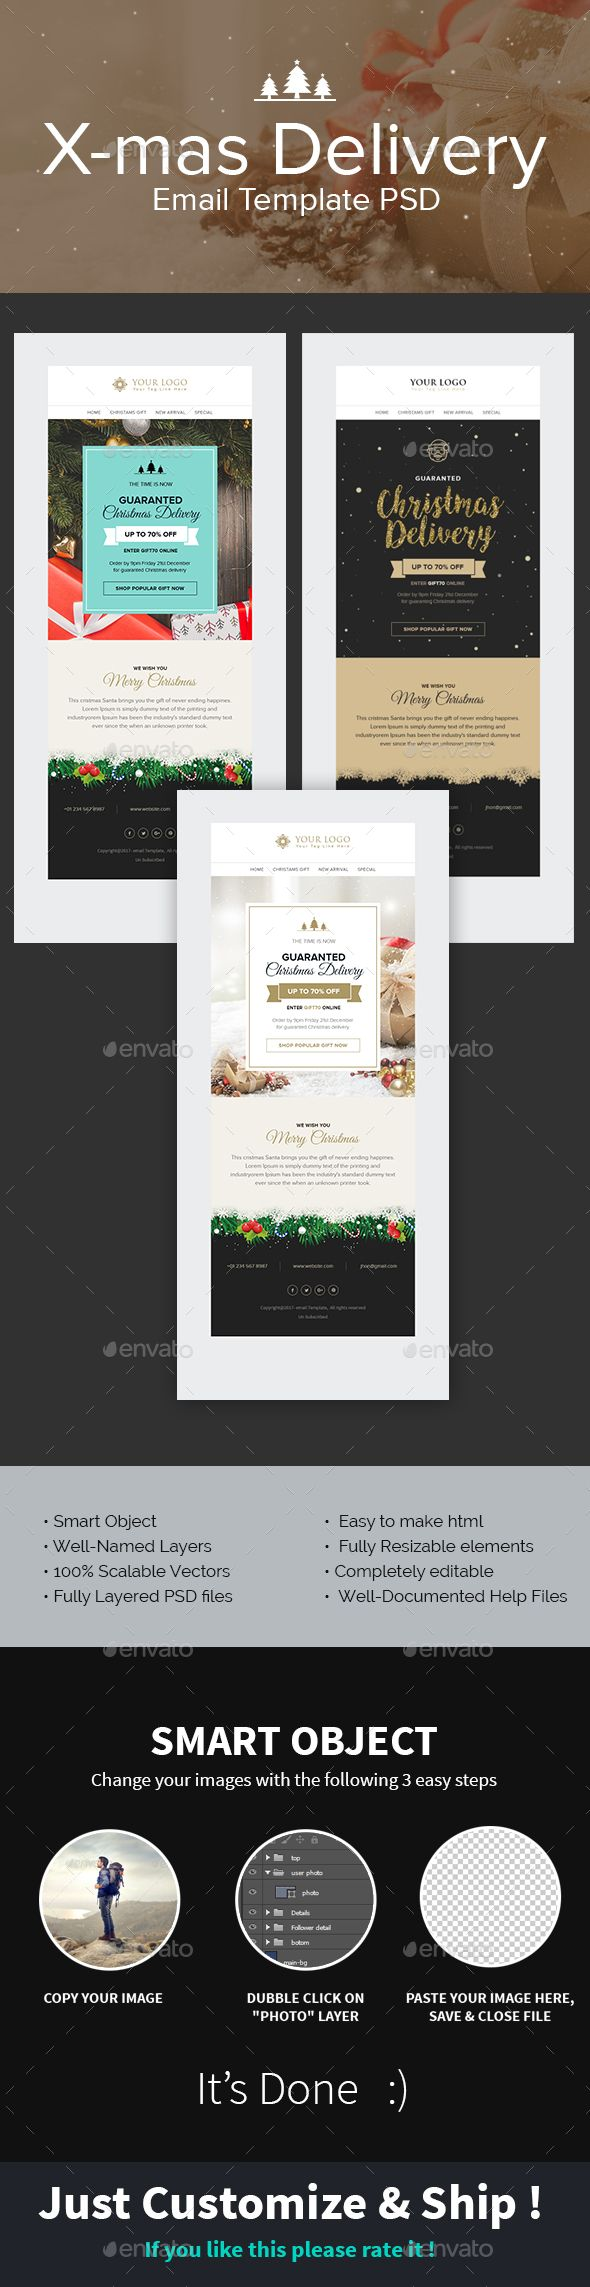 X-mas Delivery - Christmas Delivery Offer Email Template PSD   Fonts ...